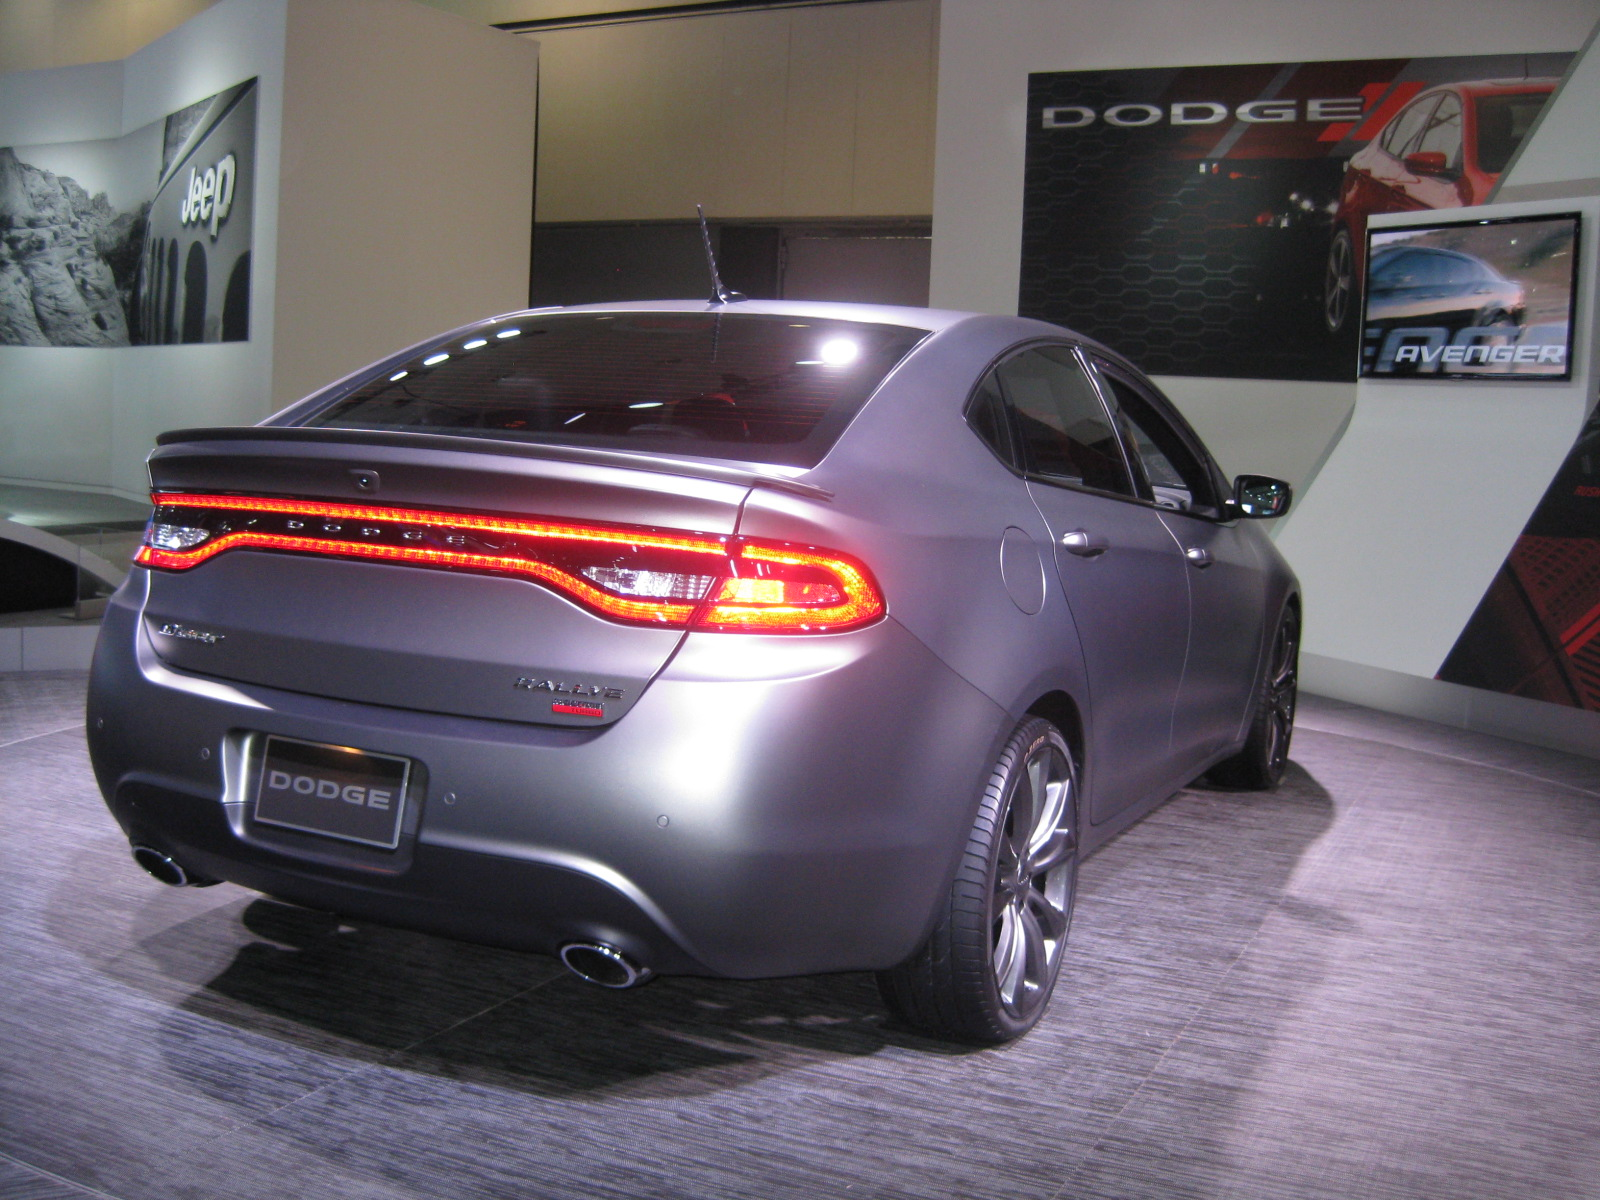 Chrysler Group 2013 Dodge Dart Rallye Rear Todd Bianco S Acarisnotarefrigerator Com Blog